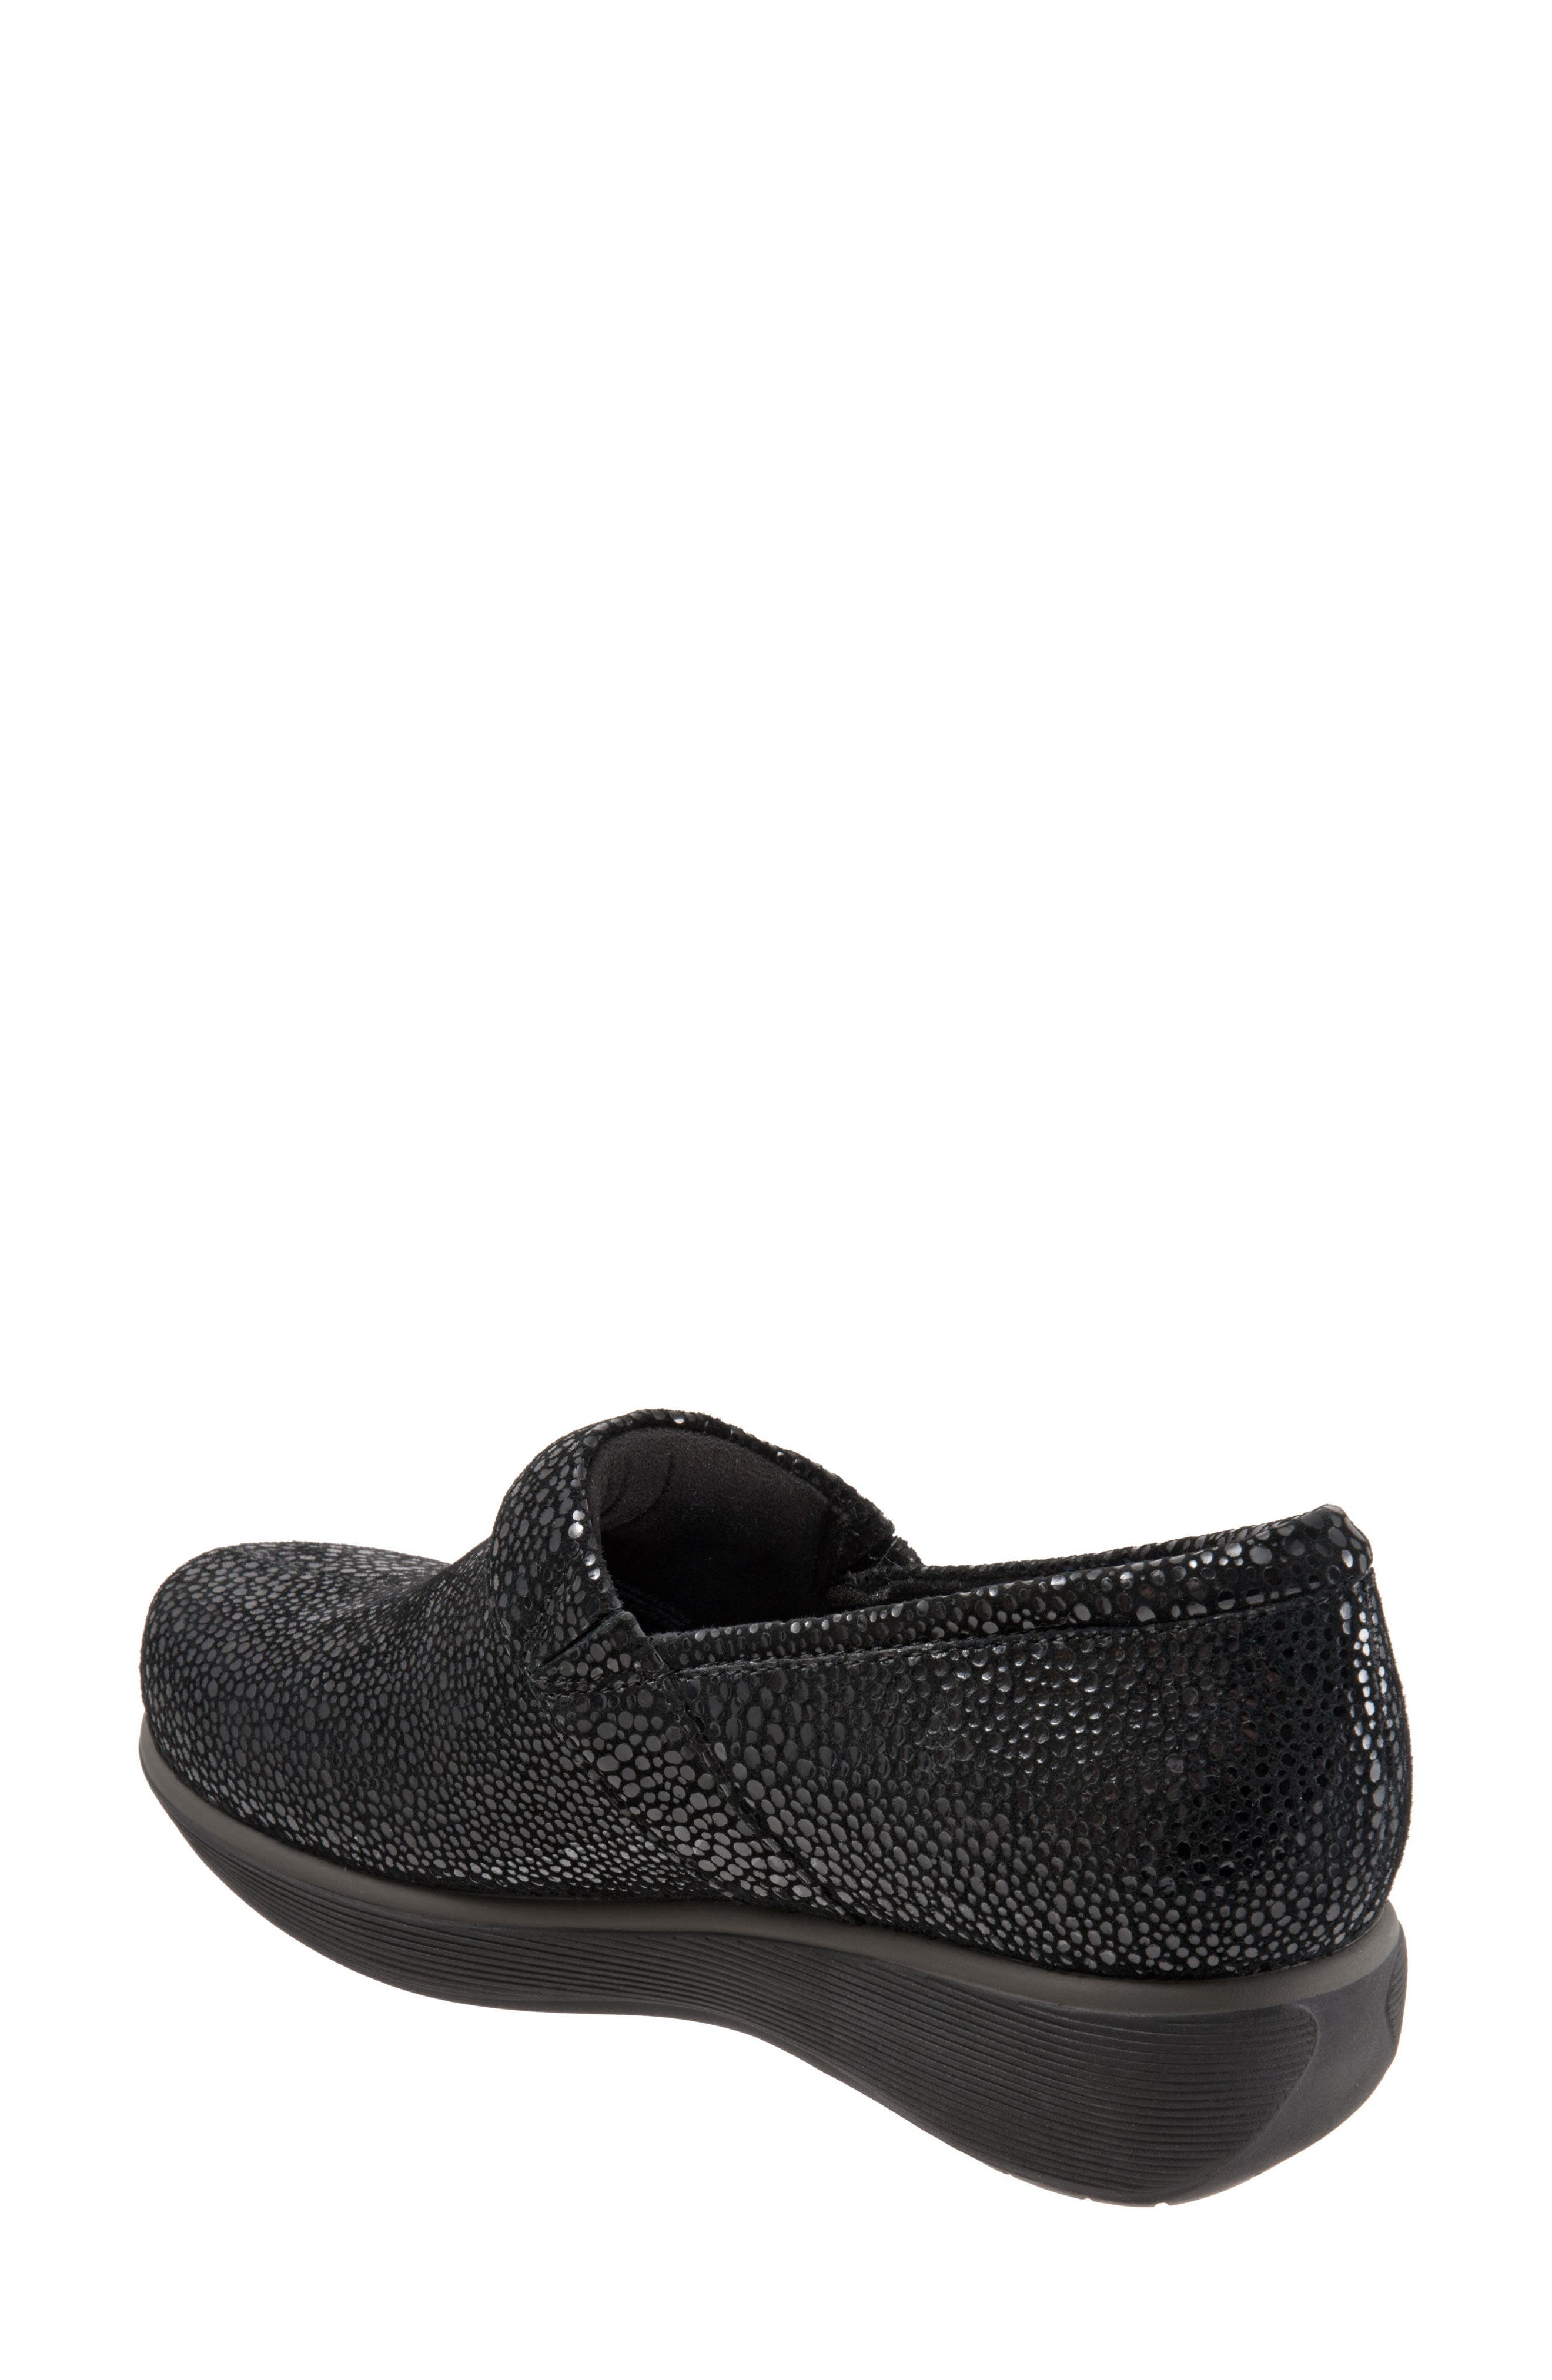 Grey's Anatomy<sup>®</sup> by Softwalk<sup>®</sup> 'Meredith' Leather Clog,                             Alternate thumbnail 2, color,                             004